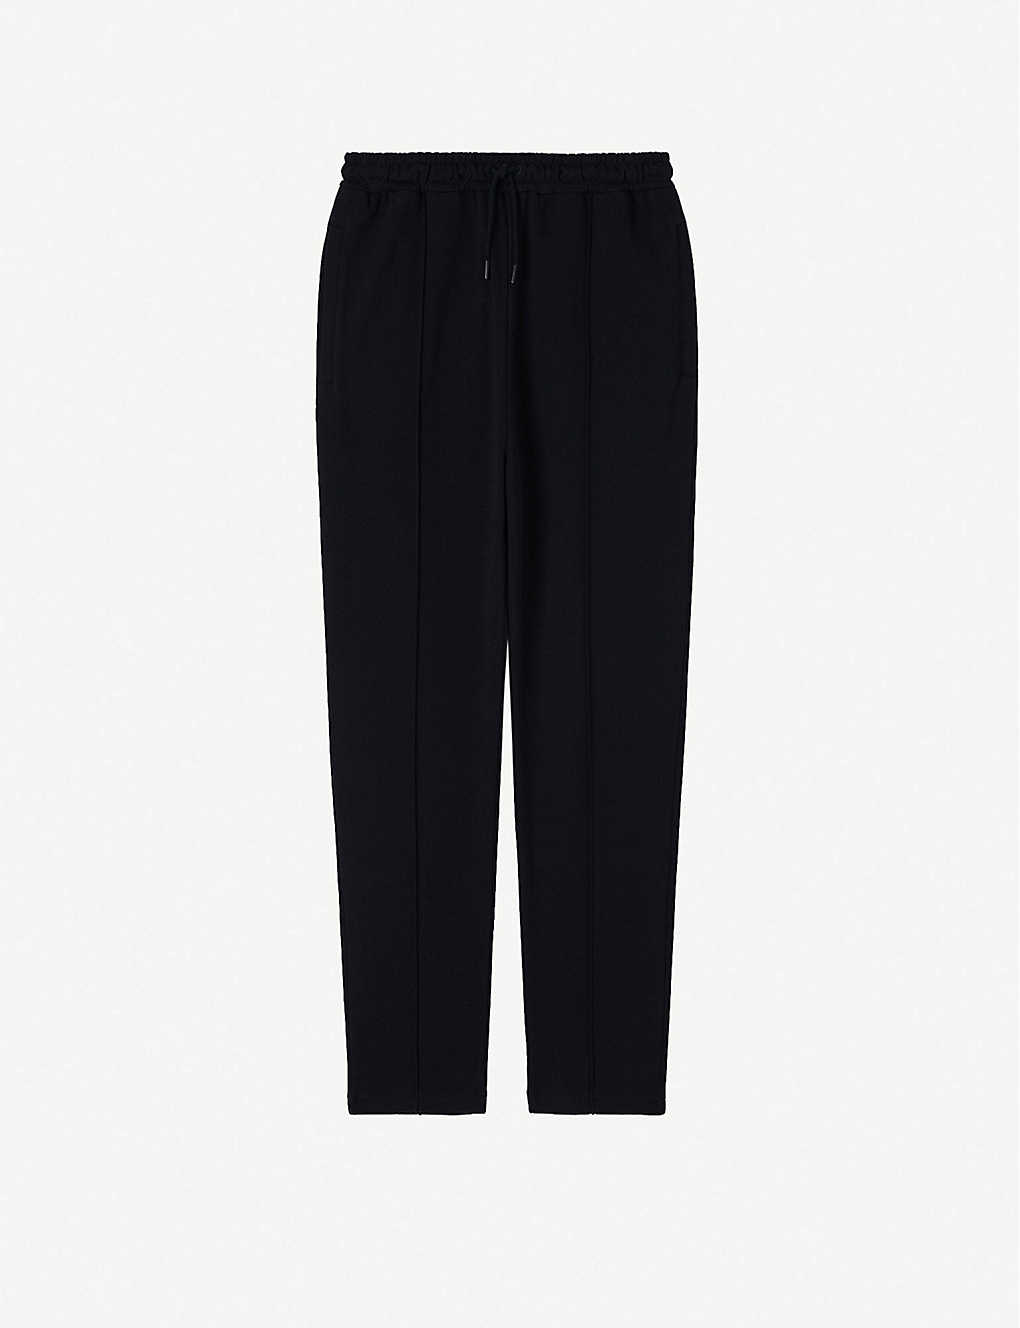 KENZO: Kenzo x Vans cotton-jersey jogging bottoms